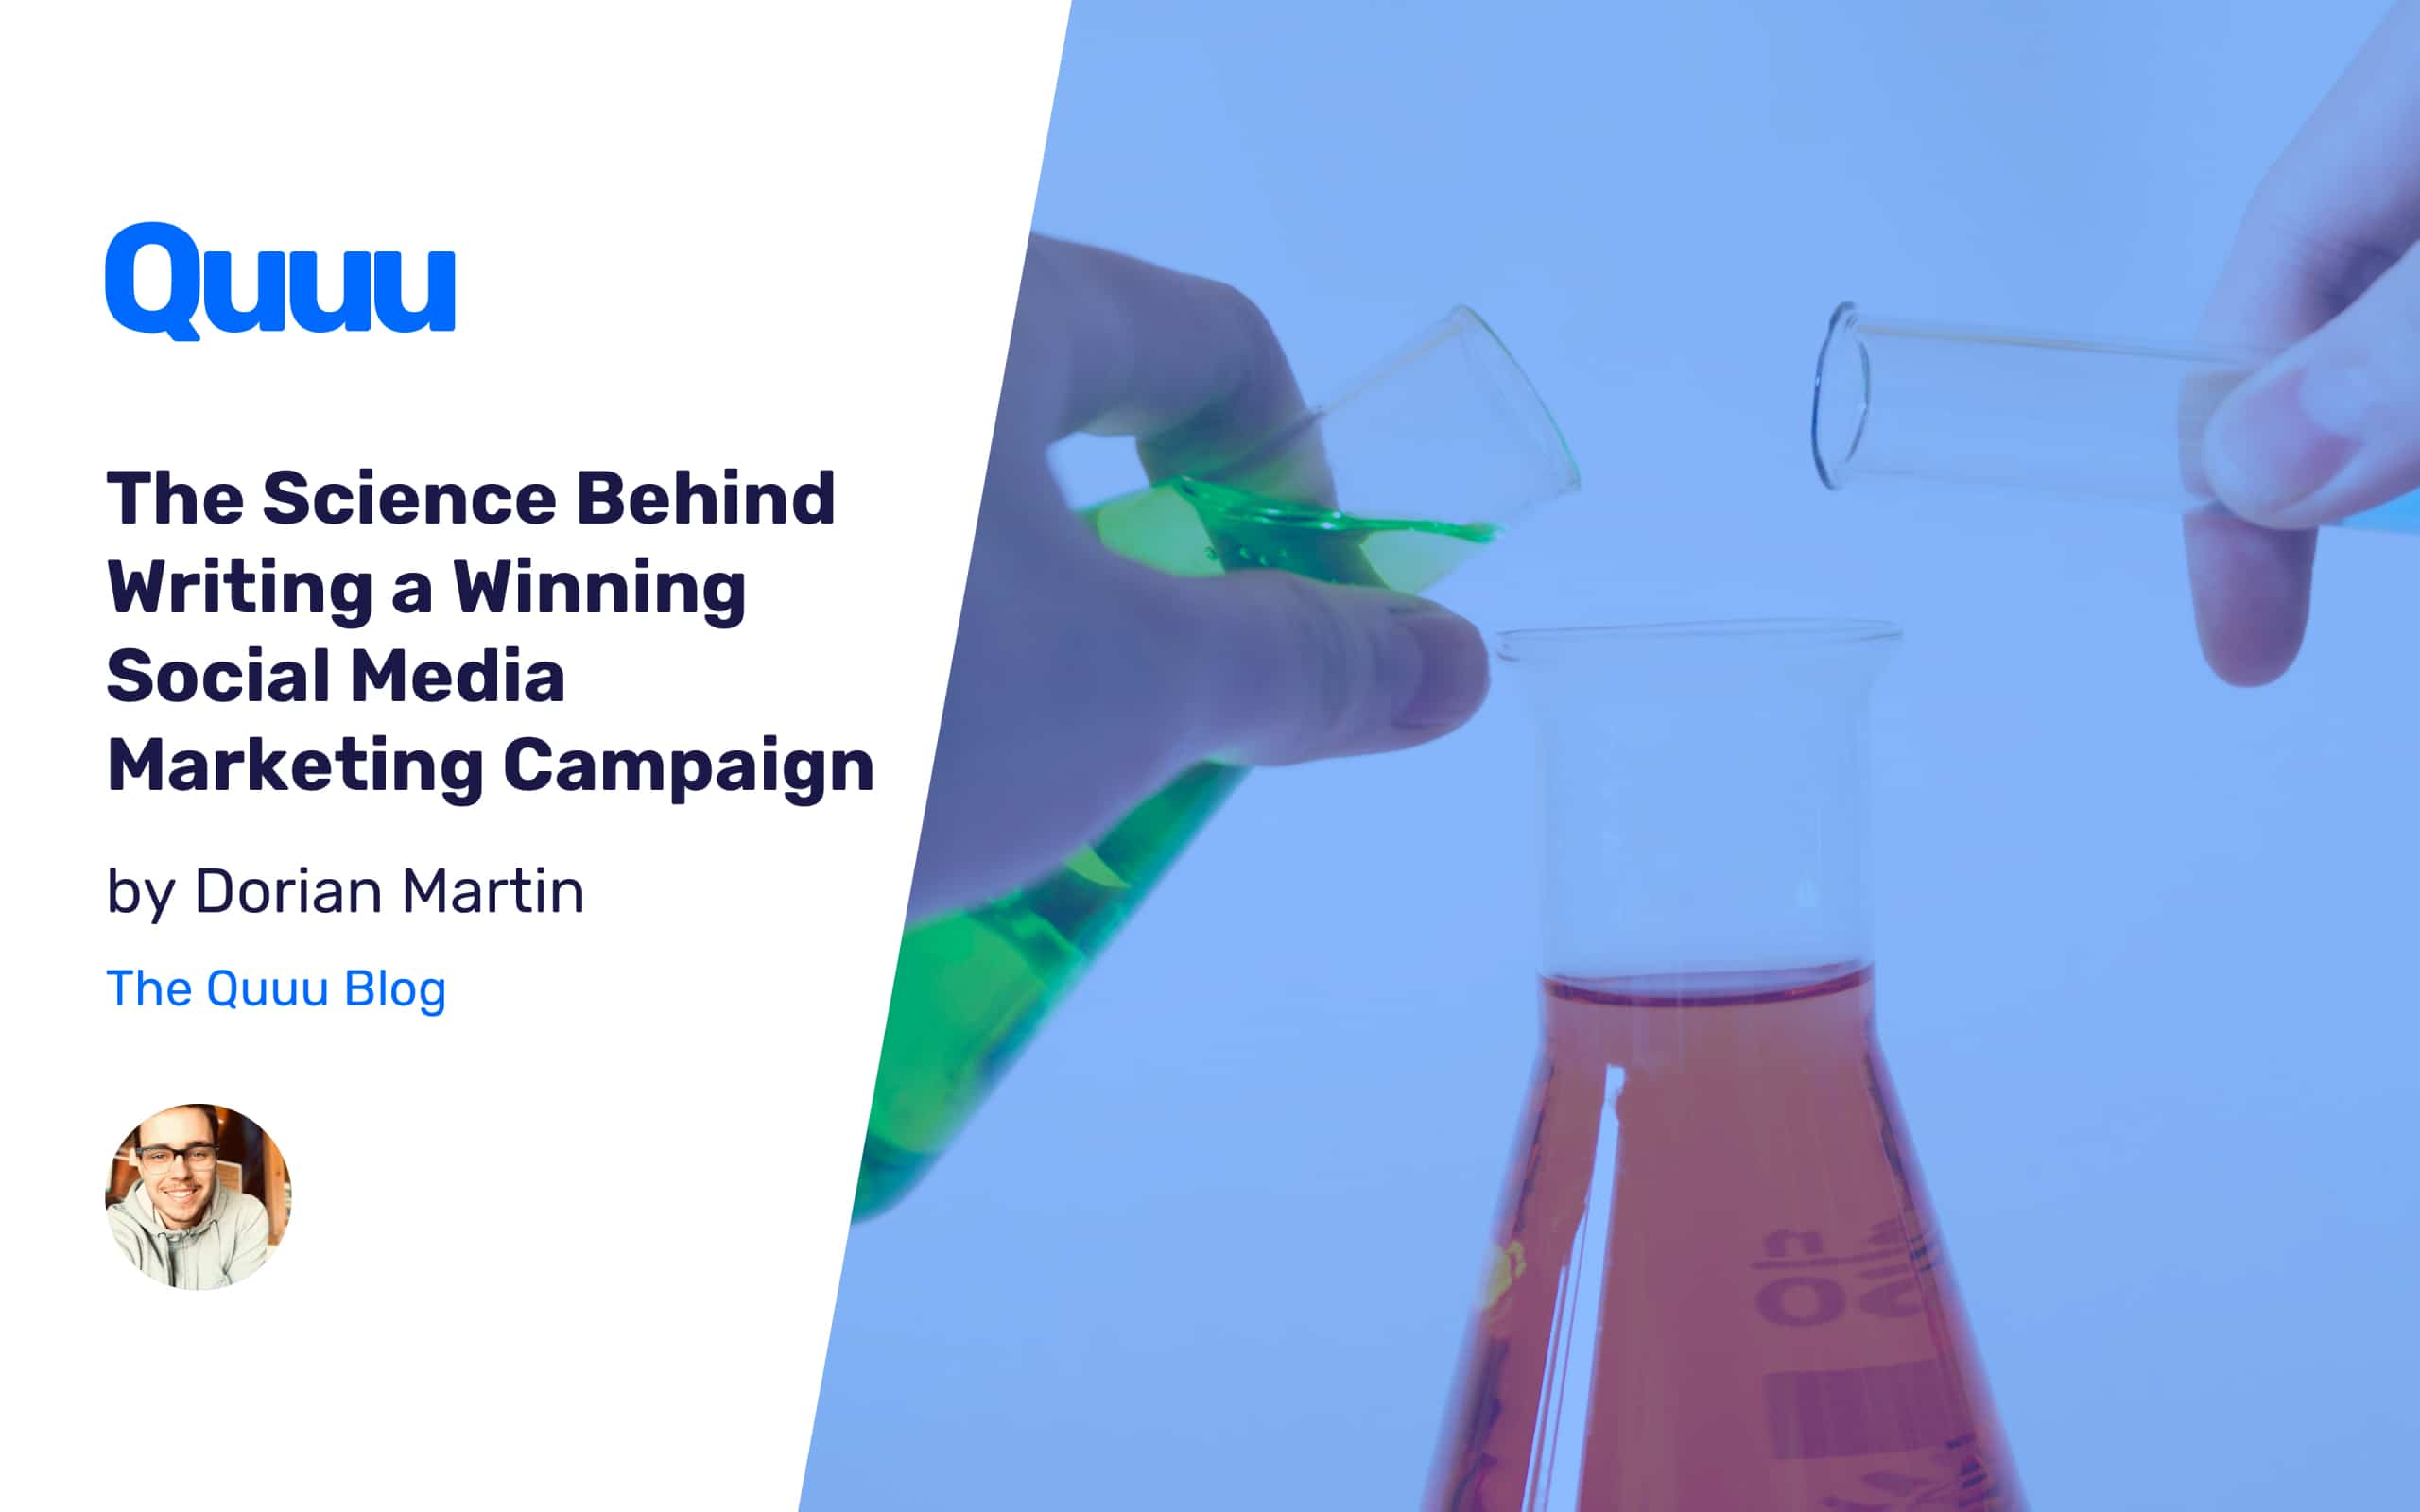 The Science Behind Writing a Winning Social Media Marketing Campaign